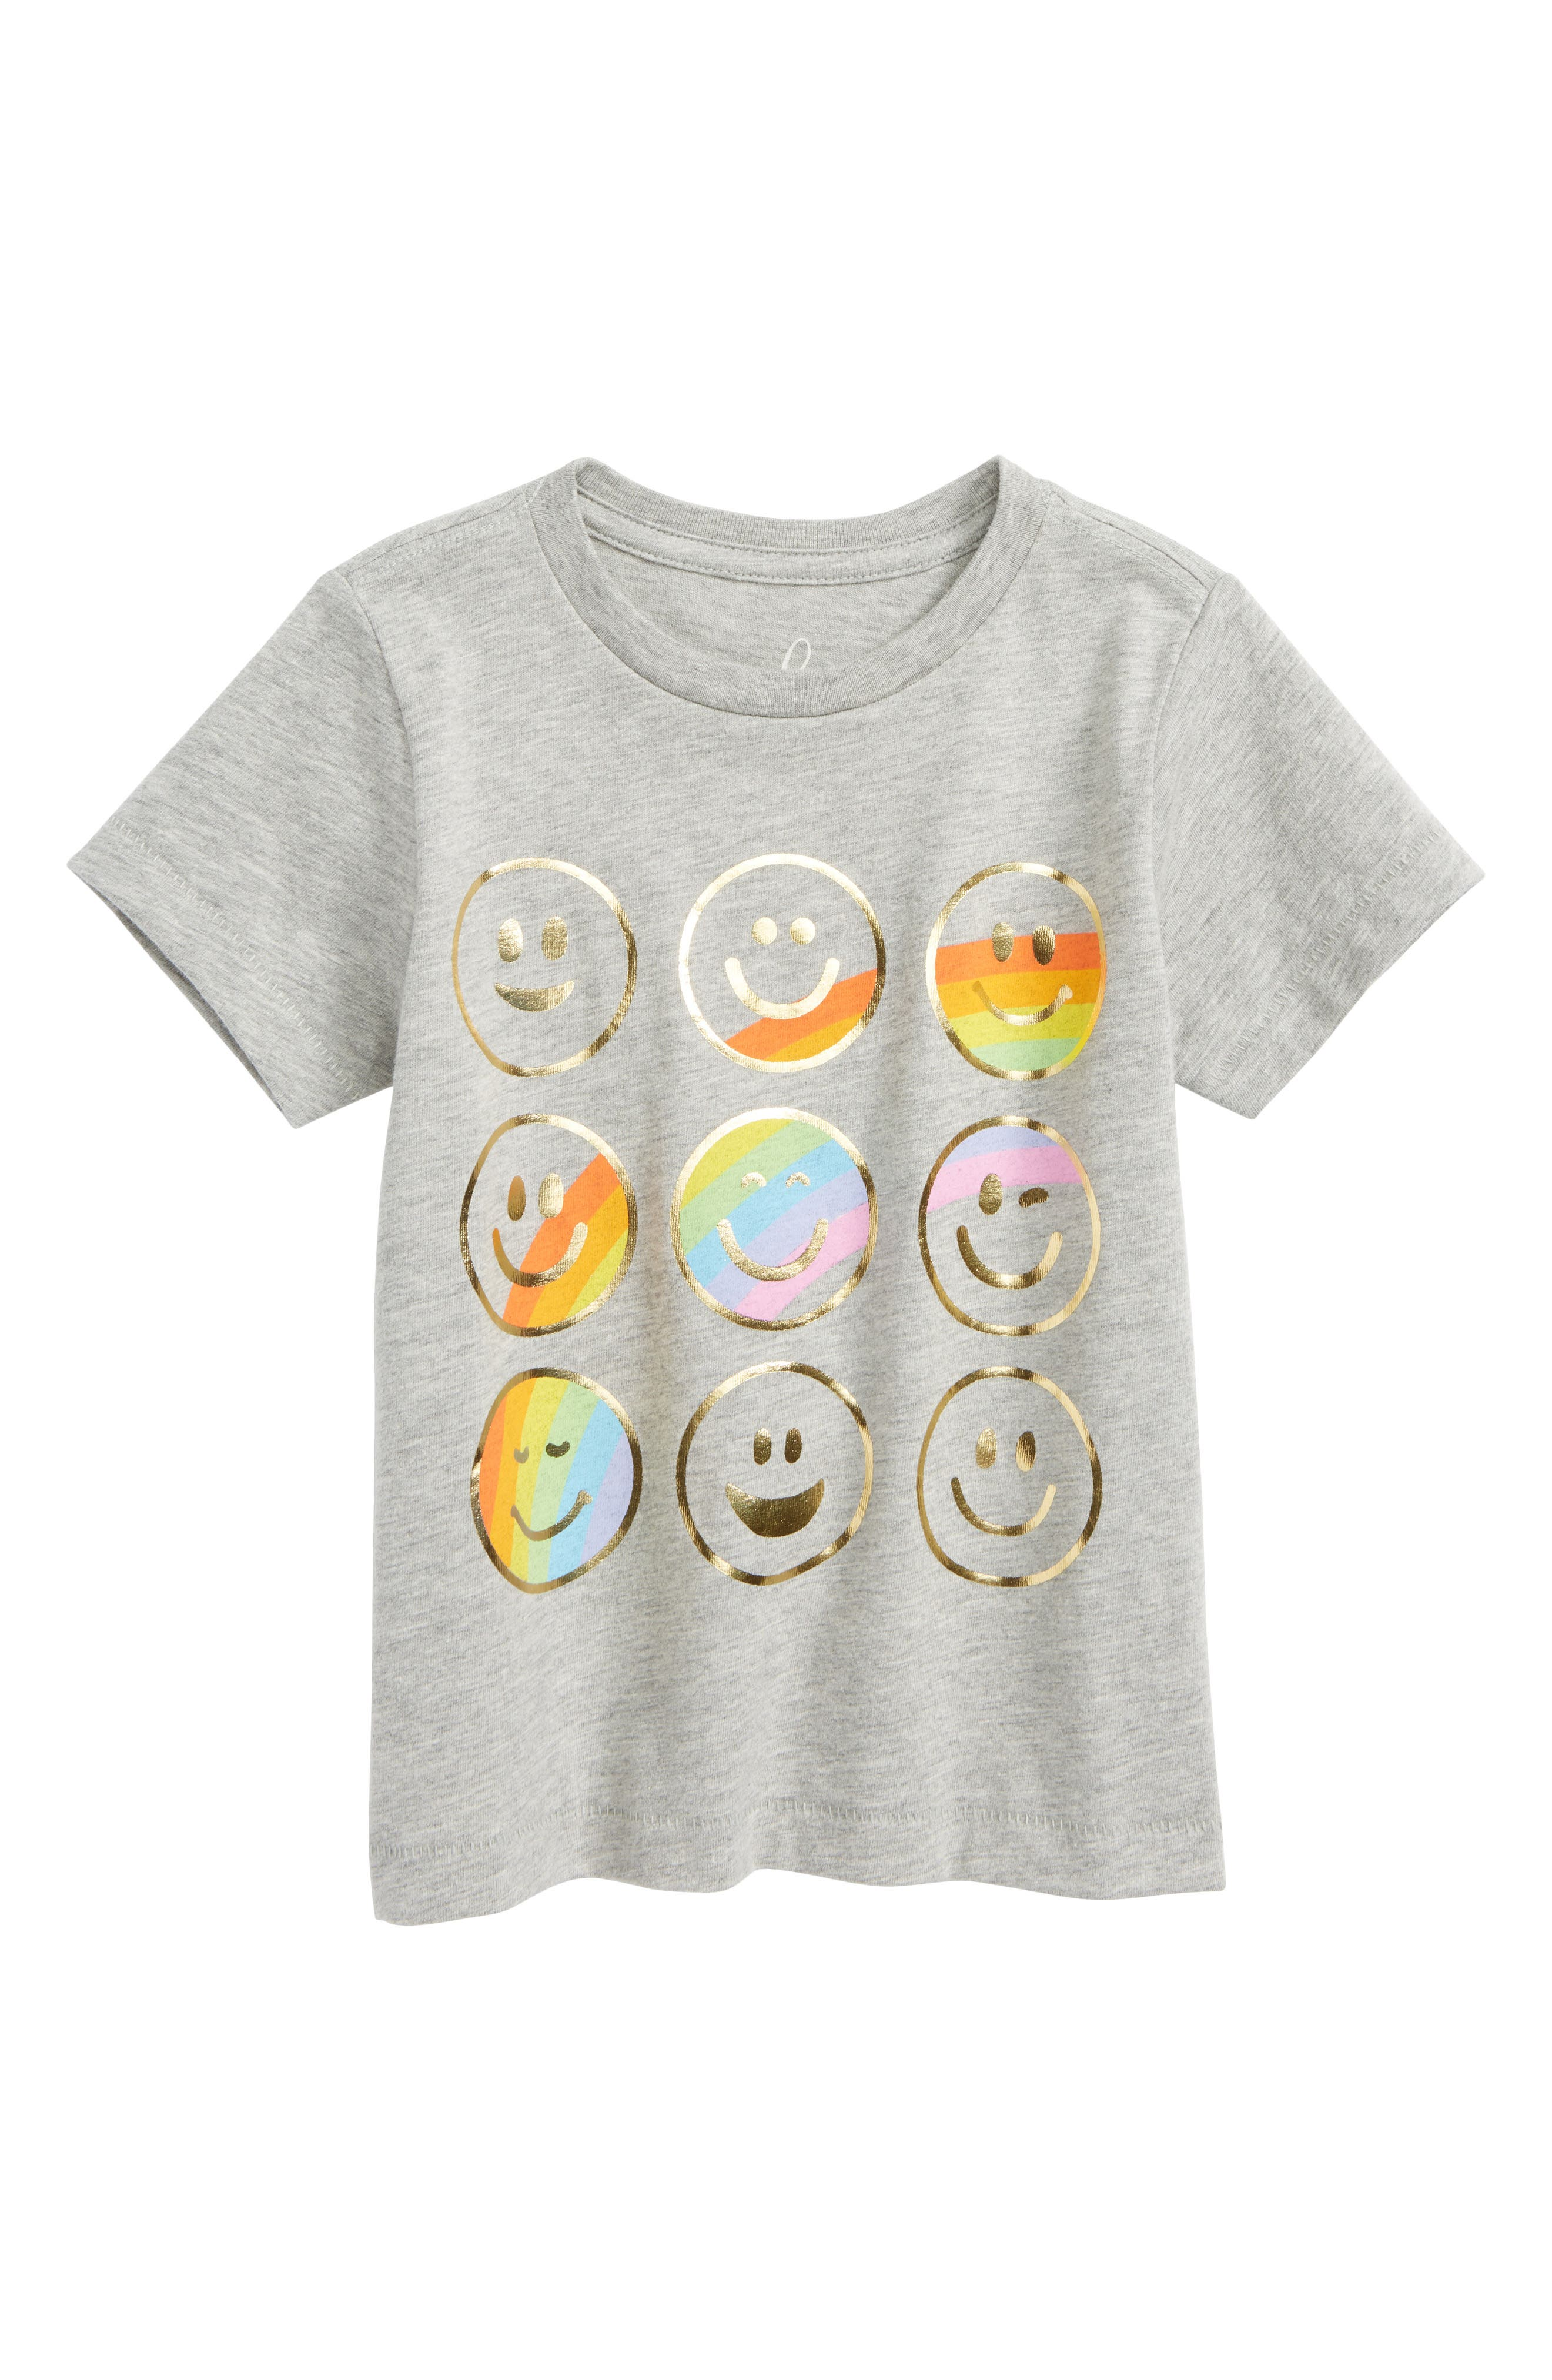 Emoticons Graphic Tee,                             Main thumbnail 1, color,                             Light Grey Heather